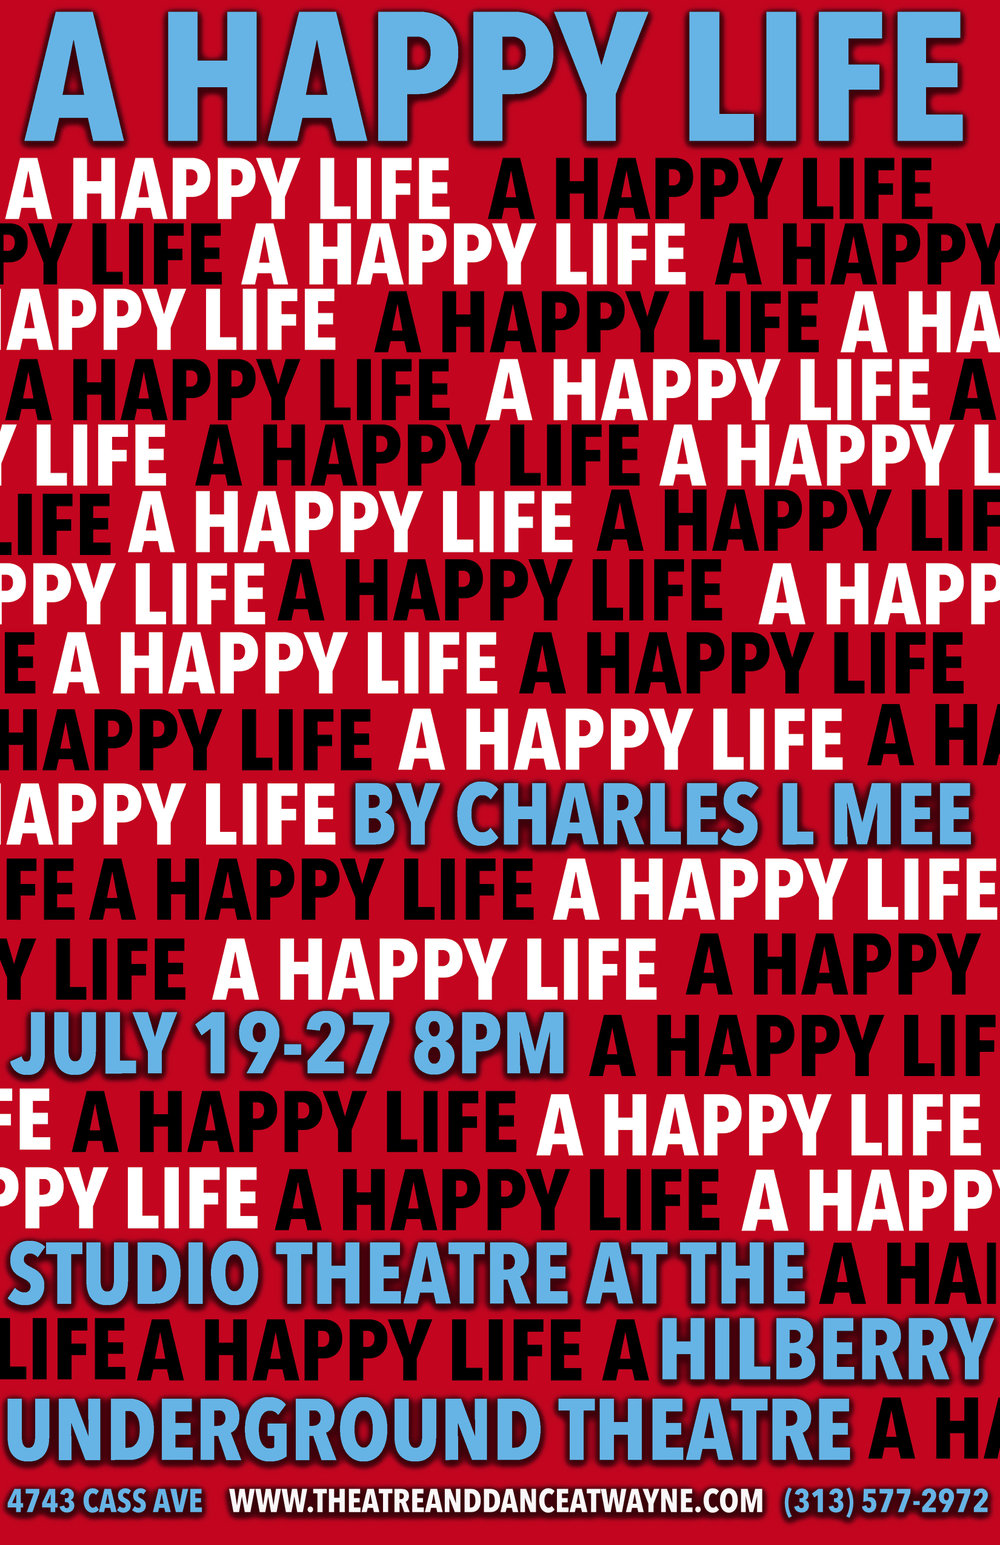 Happy Life Alternate.jpg